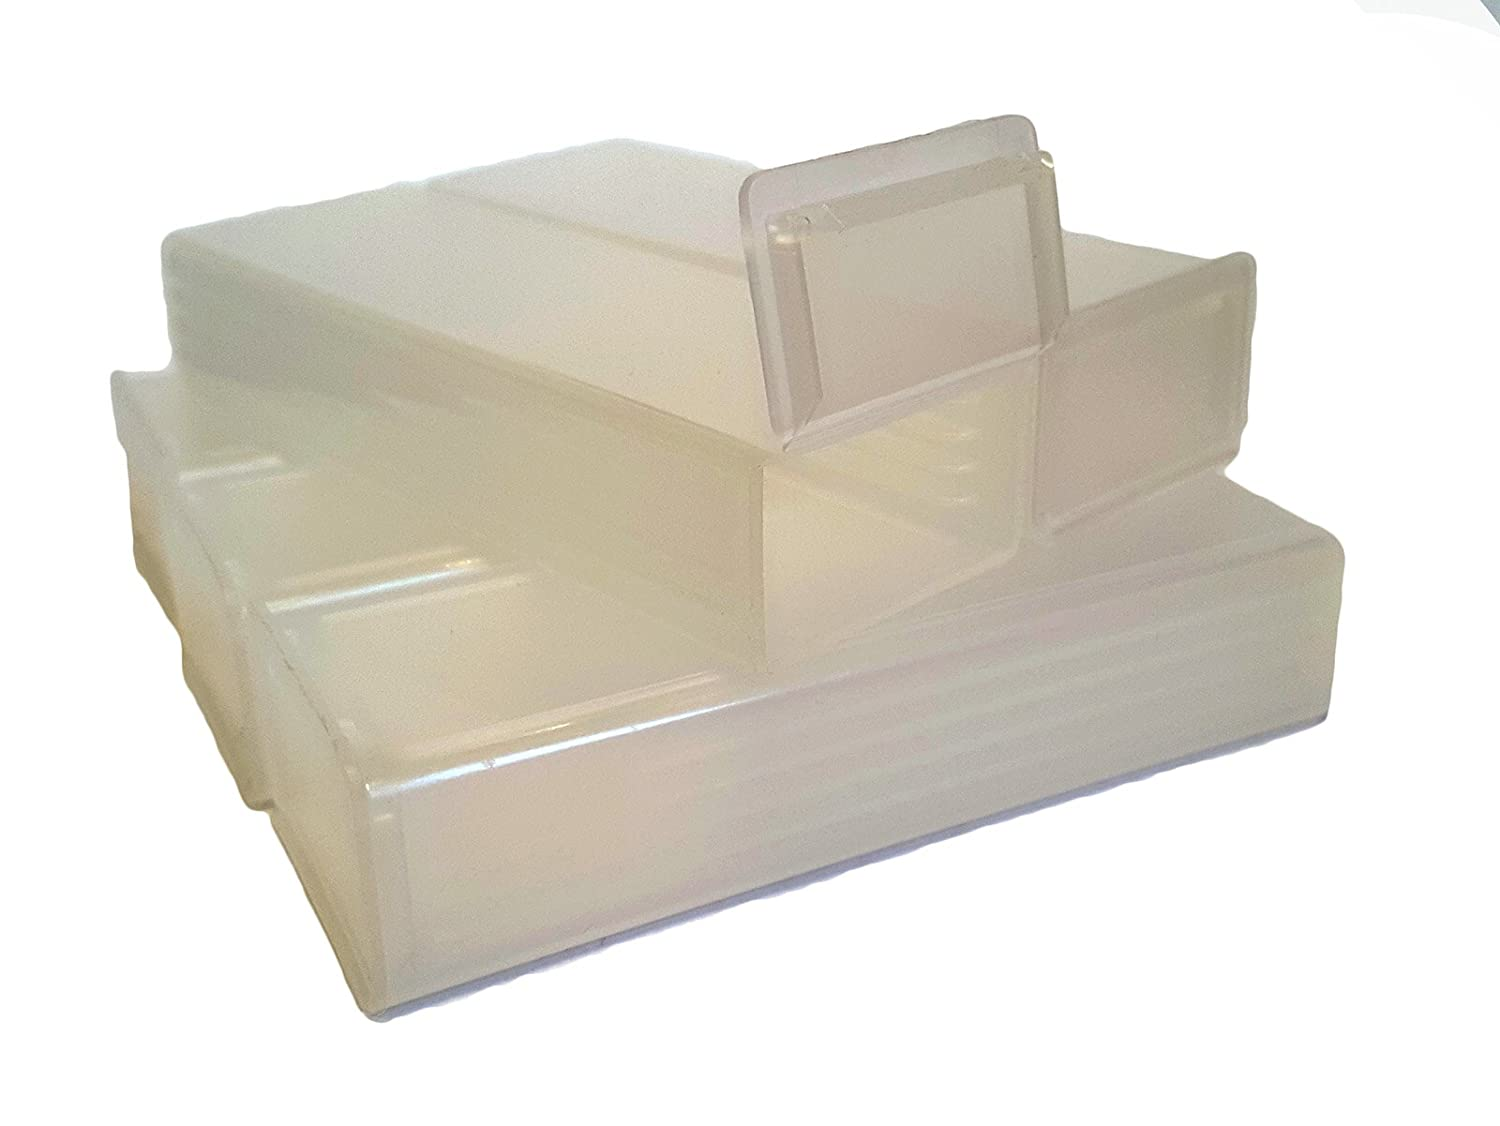 Microscope Slide Mailer Cases (5 pack) Cosmos Biomedical Ltd.